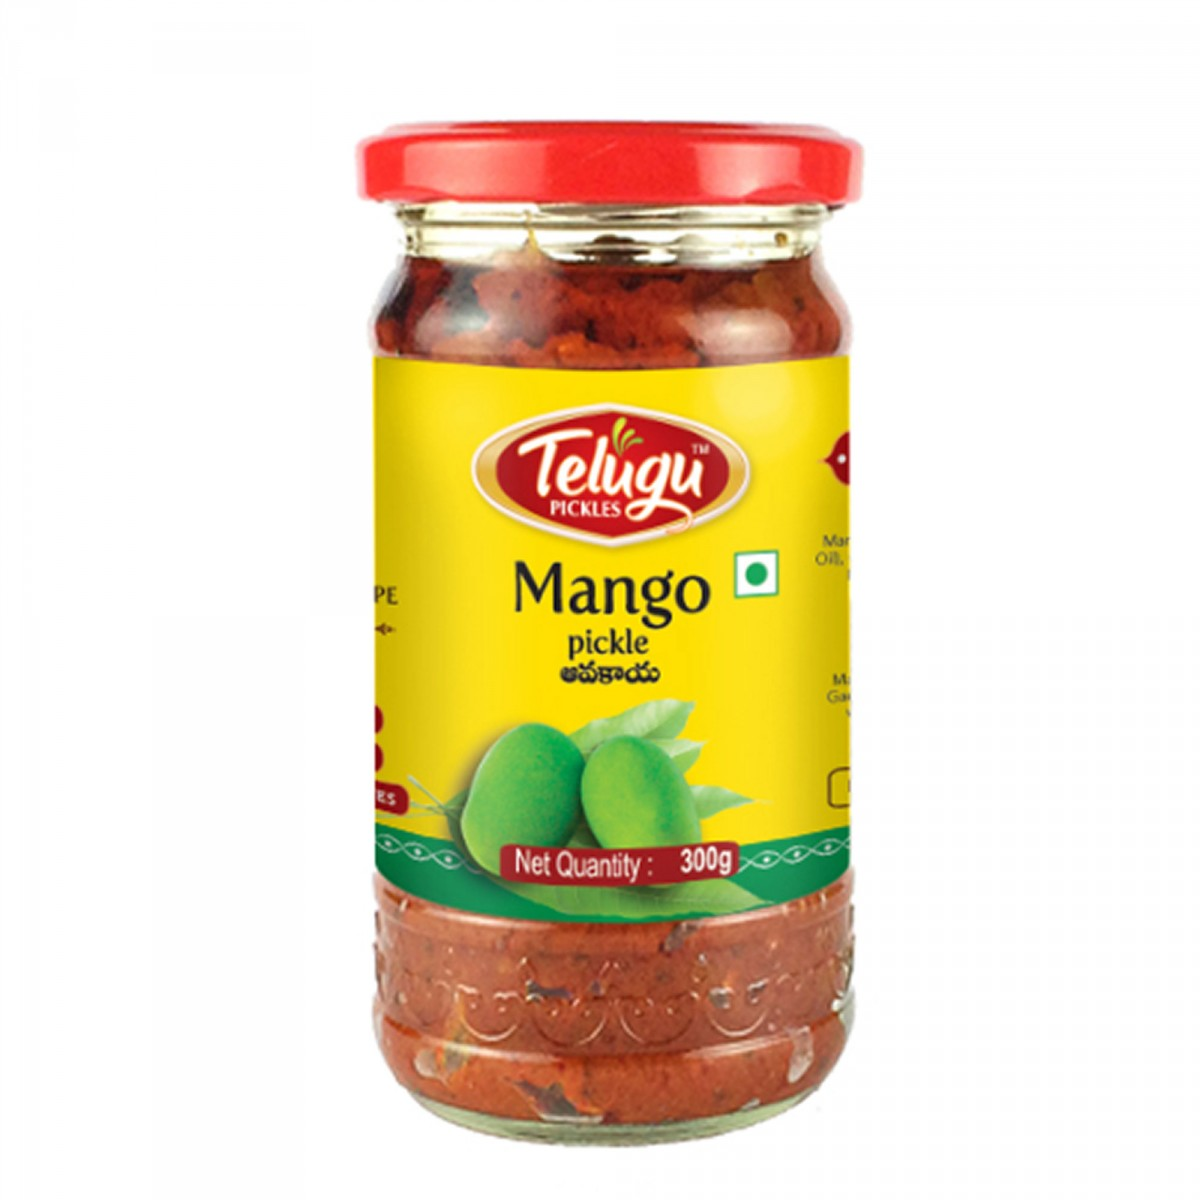 Telugu Pickle Mango Pickle